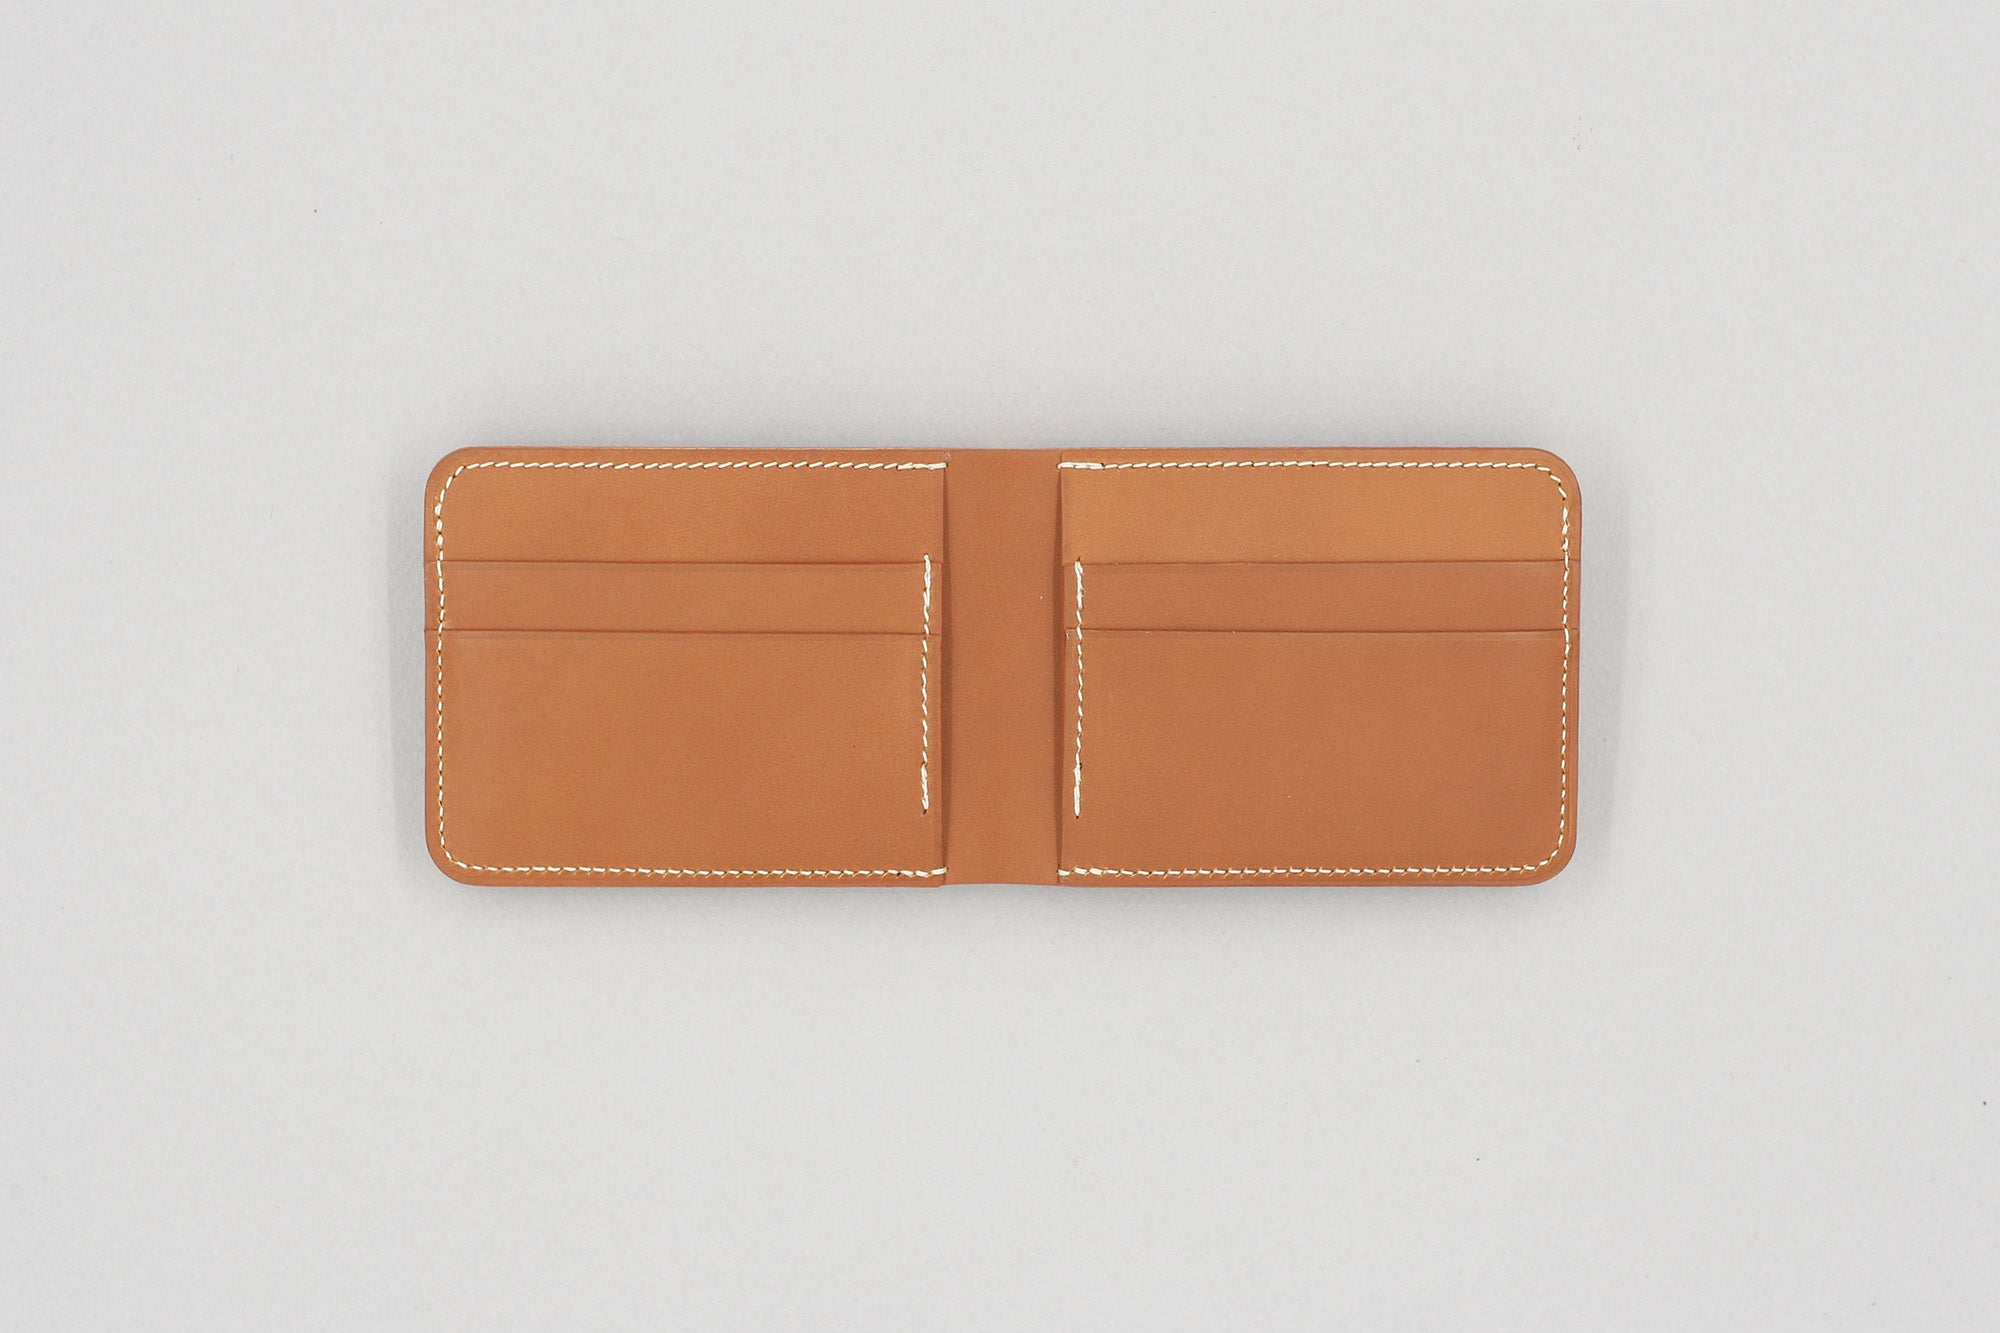 Gold Baranil Billfold Wallet